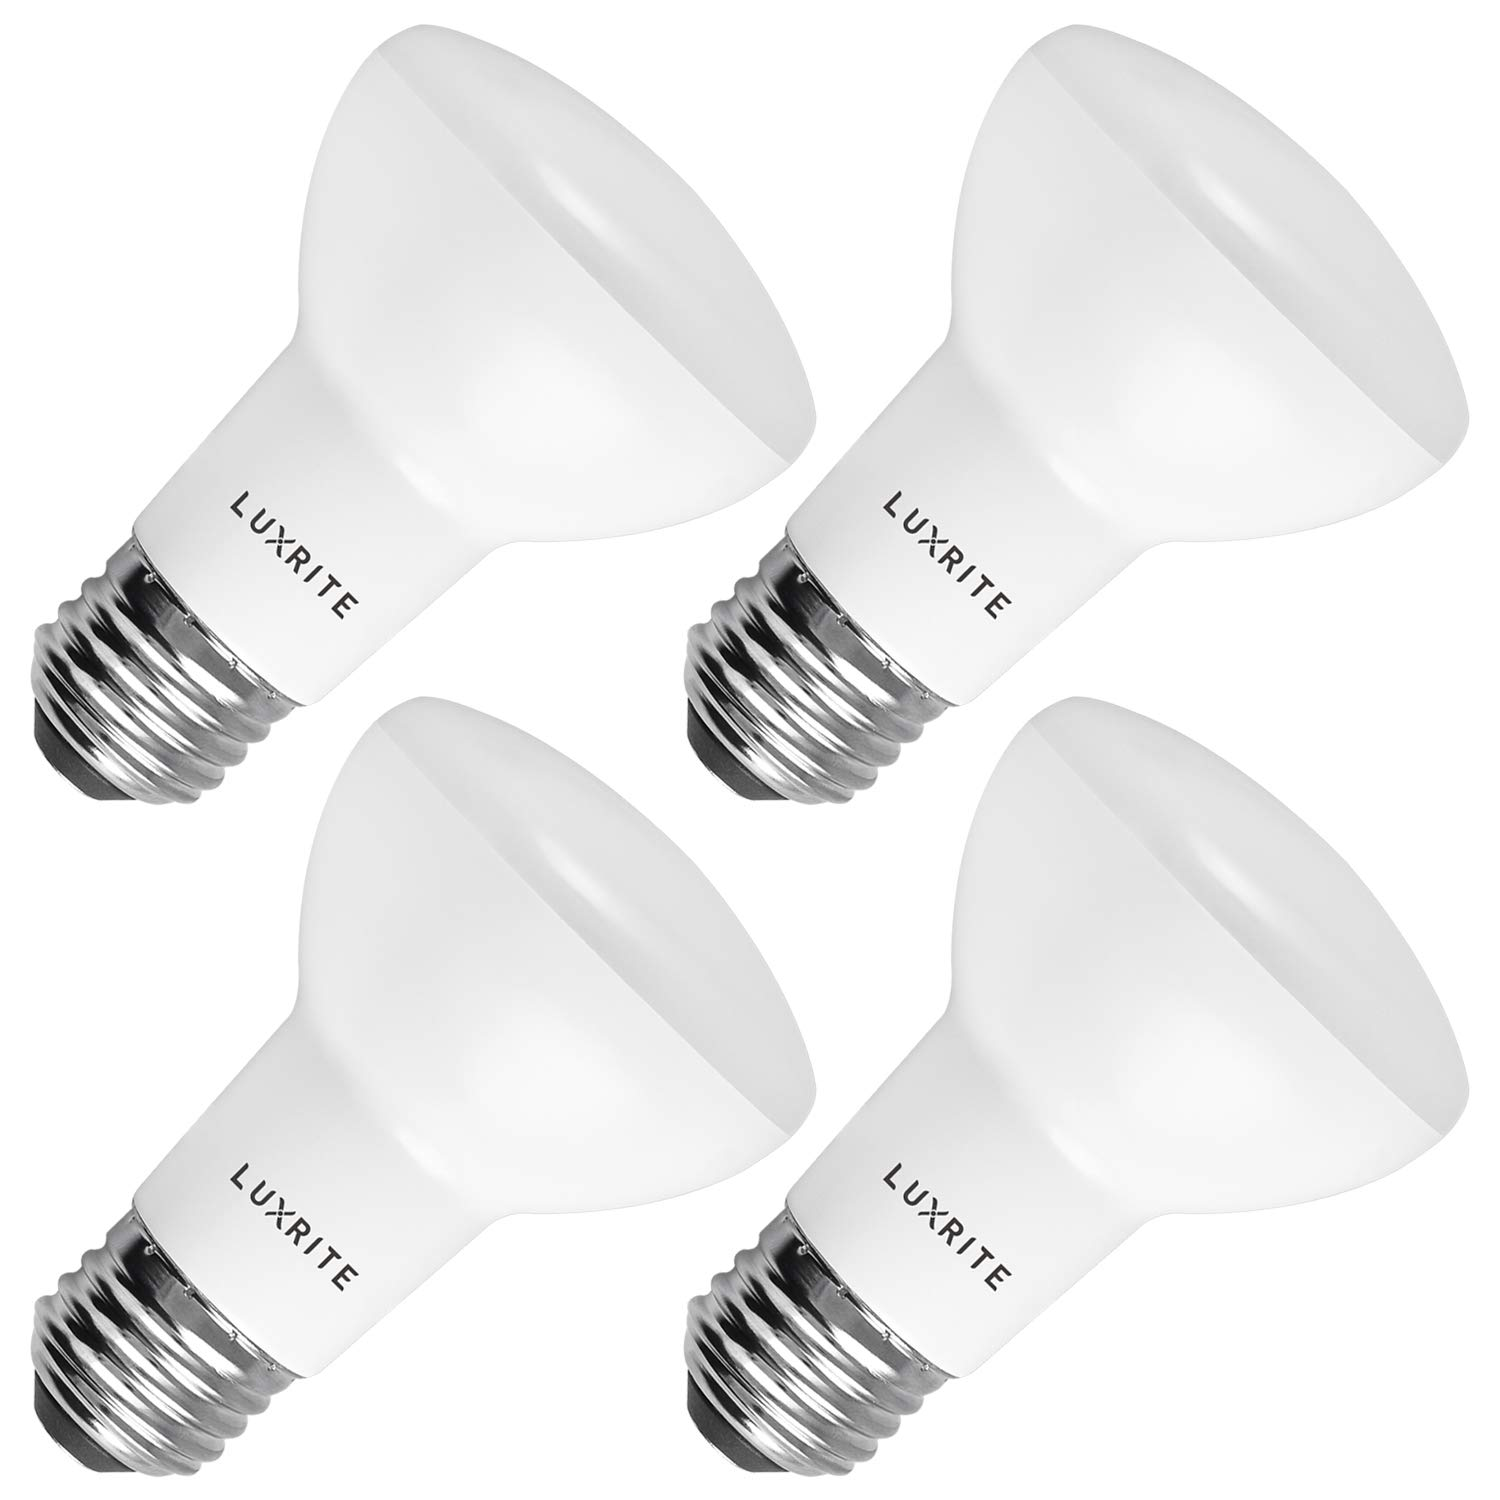 Luxrite BR20 LED Bulb, 45W Equivalent, 3000K Soft White, Dimmable, 460 Lumen, R20 LED Flood Light Bulb 6.5W, Energy Star, Damp Rated, E26 Base, Perfect for Recessed and Track Lighting (4 Pack)